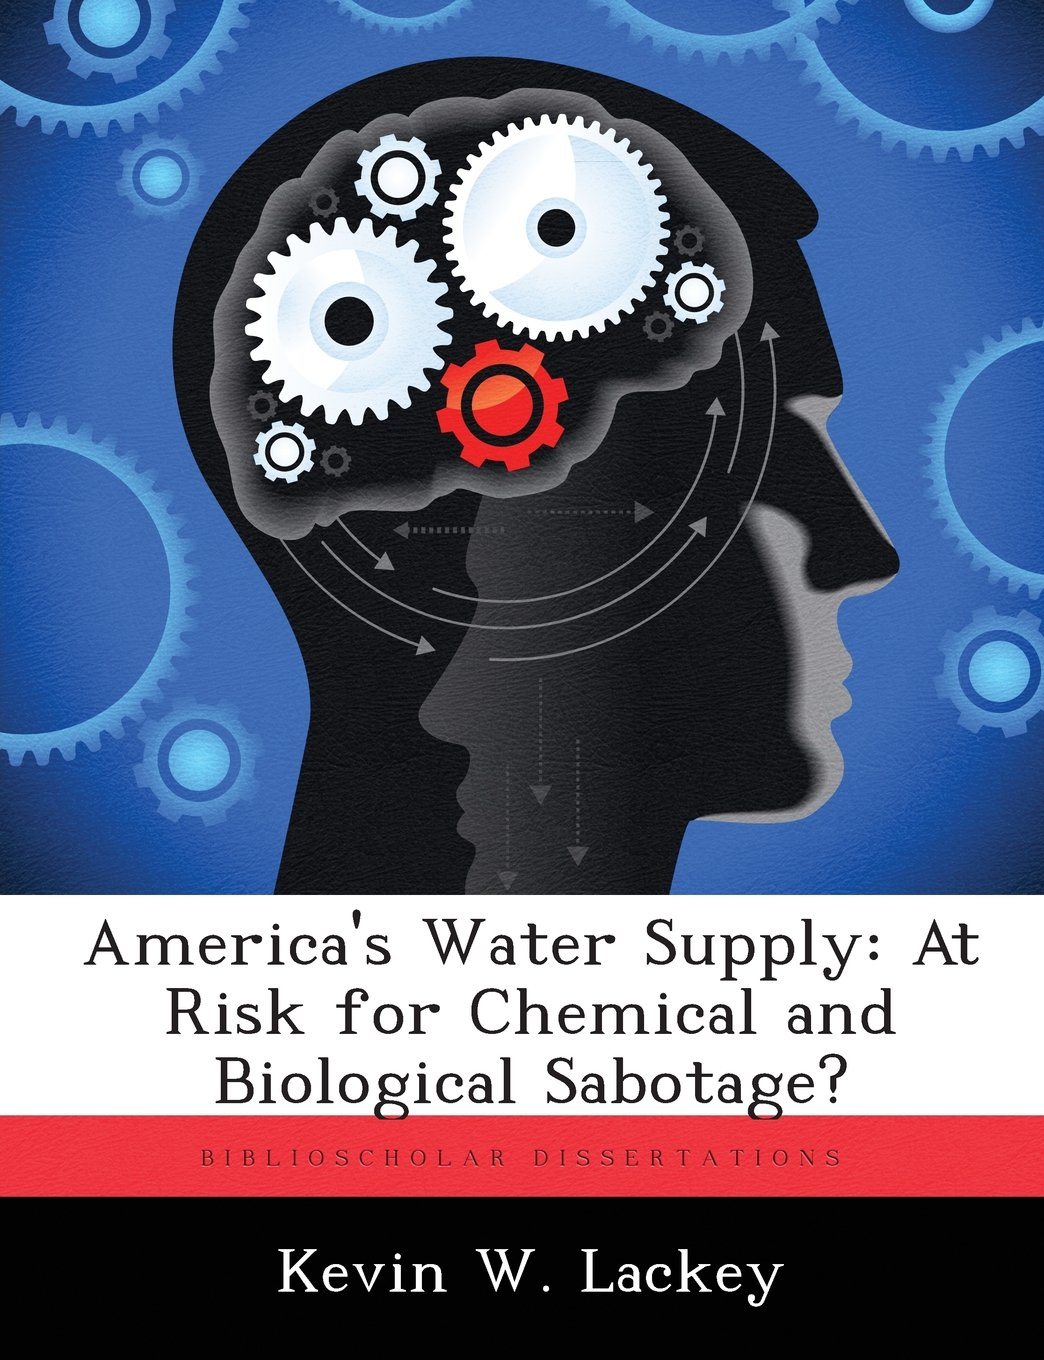 America's Water Supply: At Risk for Chemical and Biological Sabotage? PDF